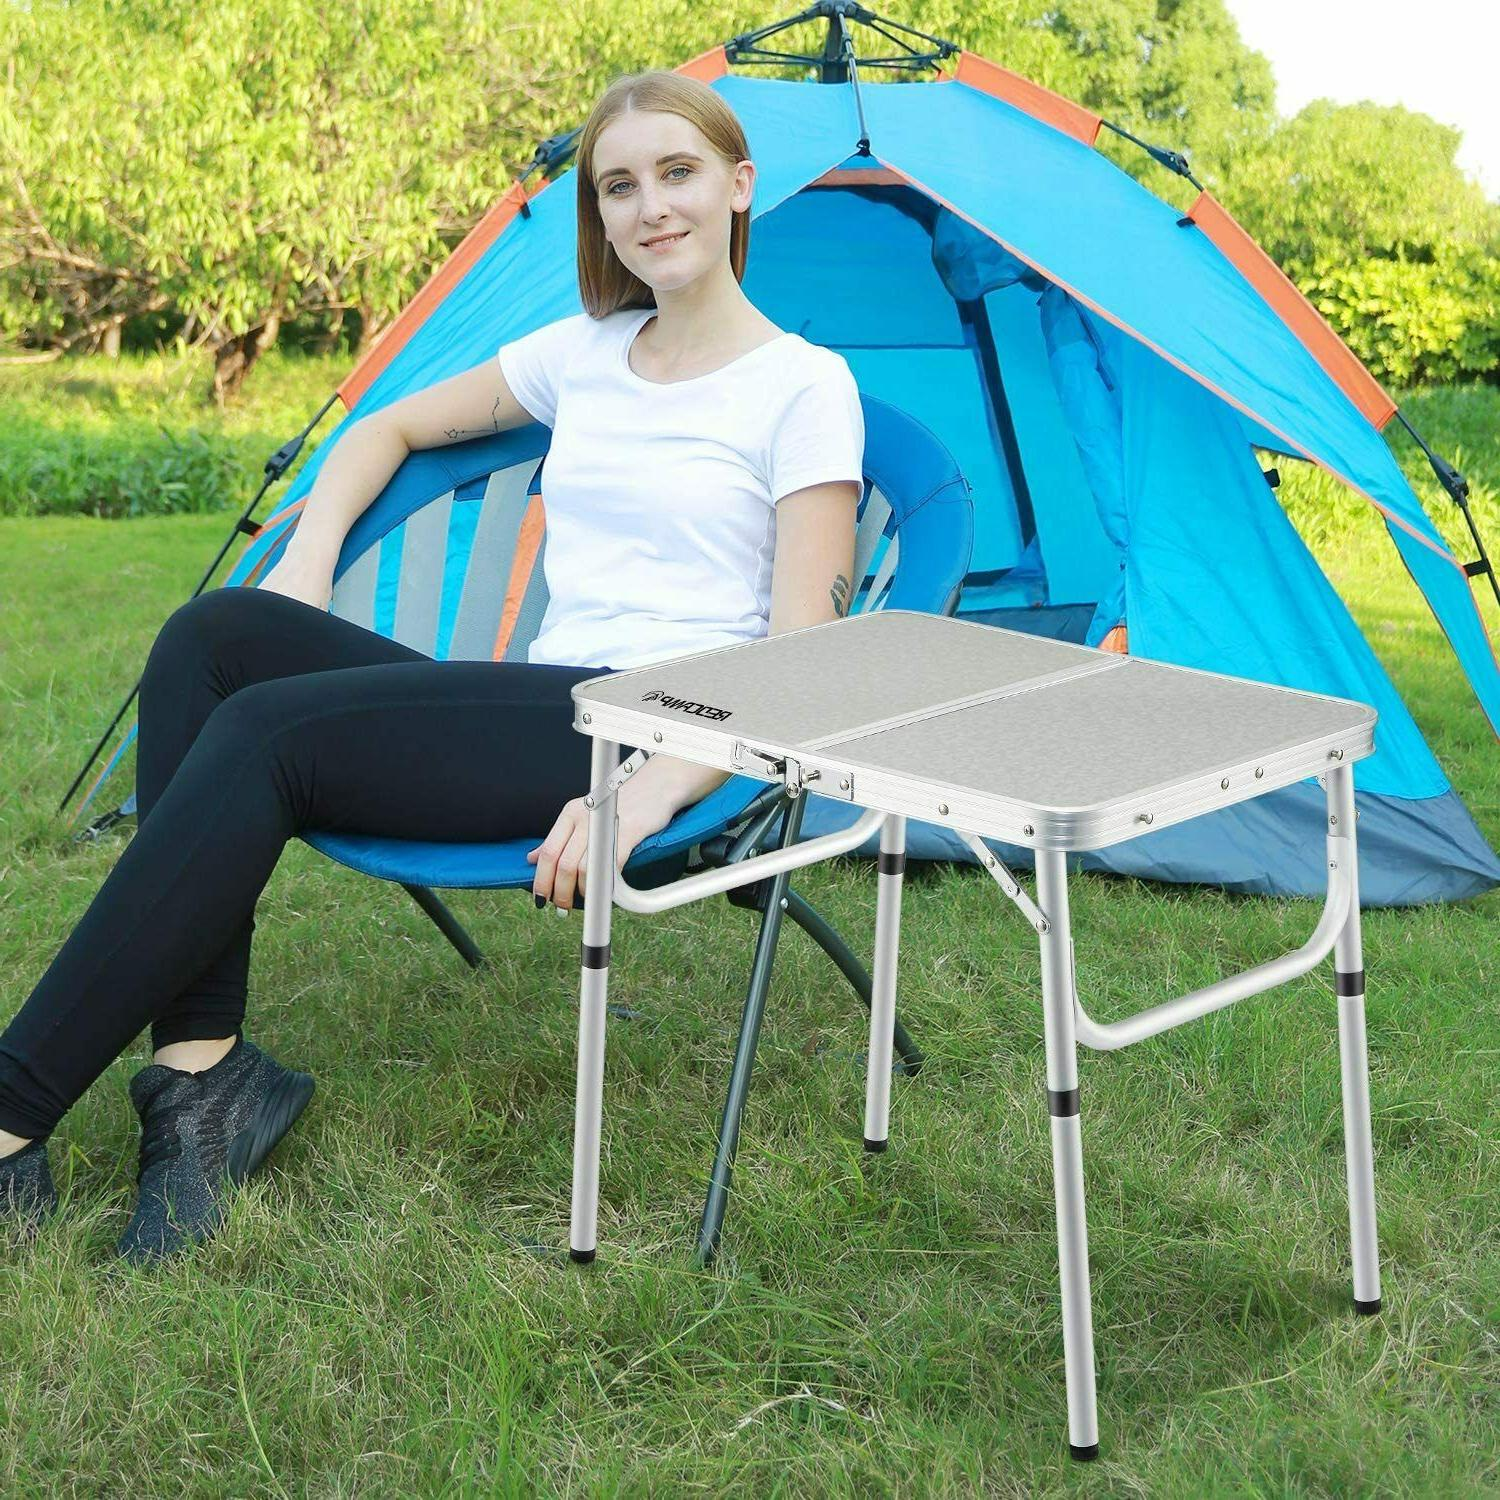 REDCAMP Small Folding Table Portable White 2